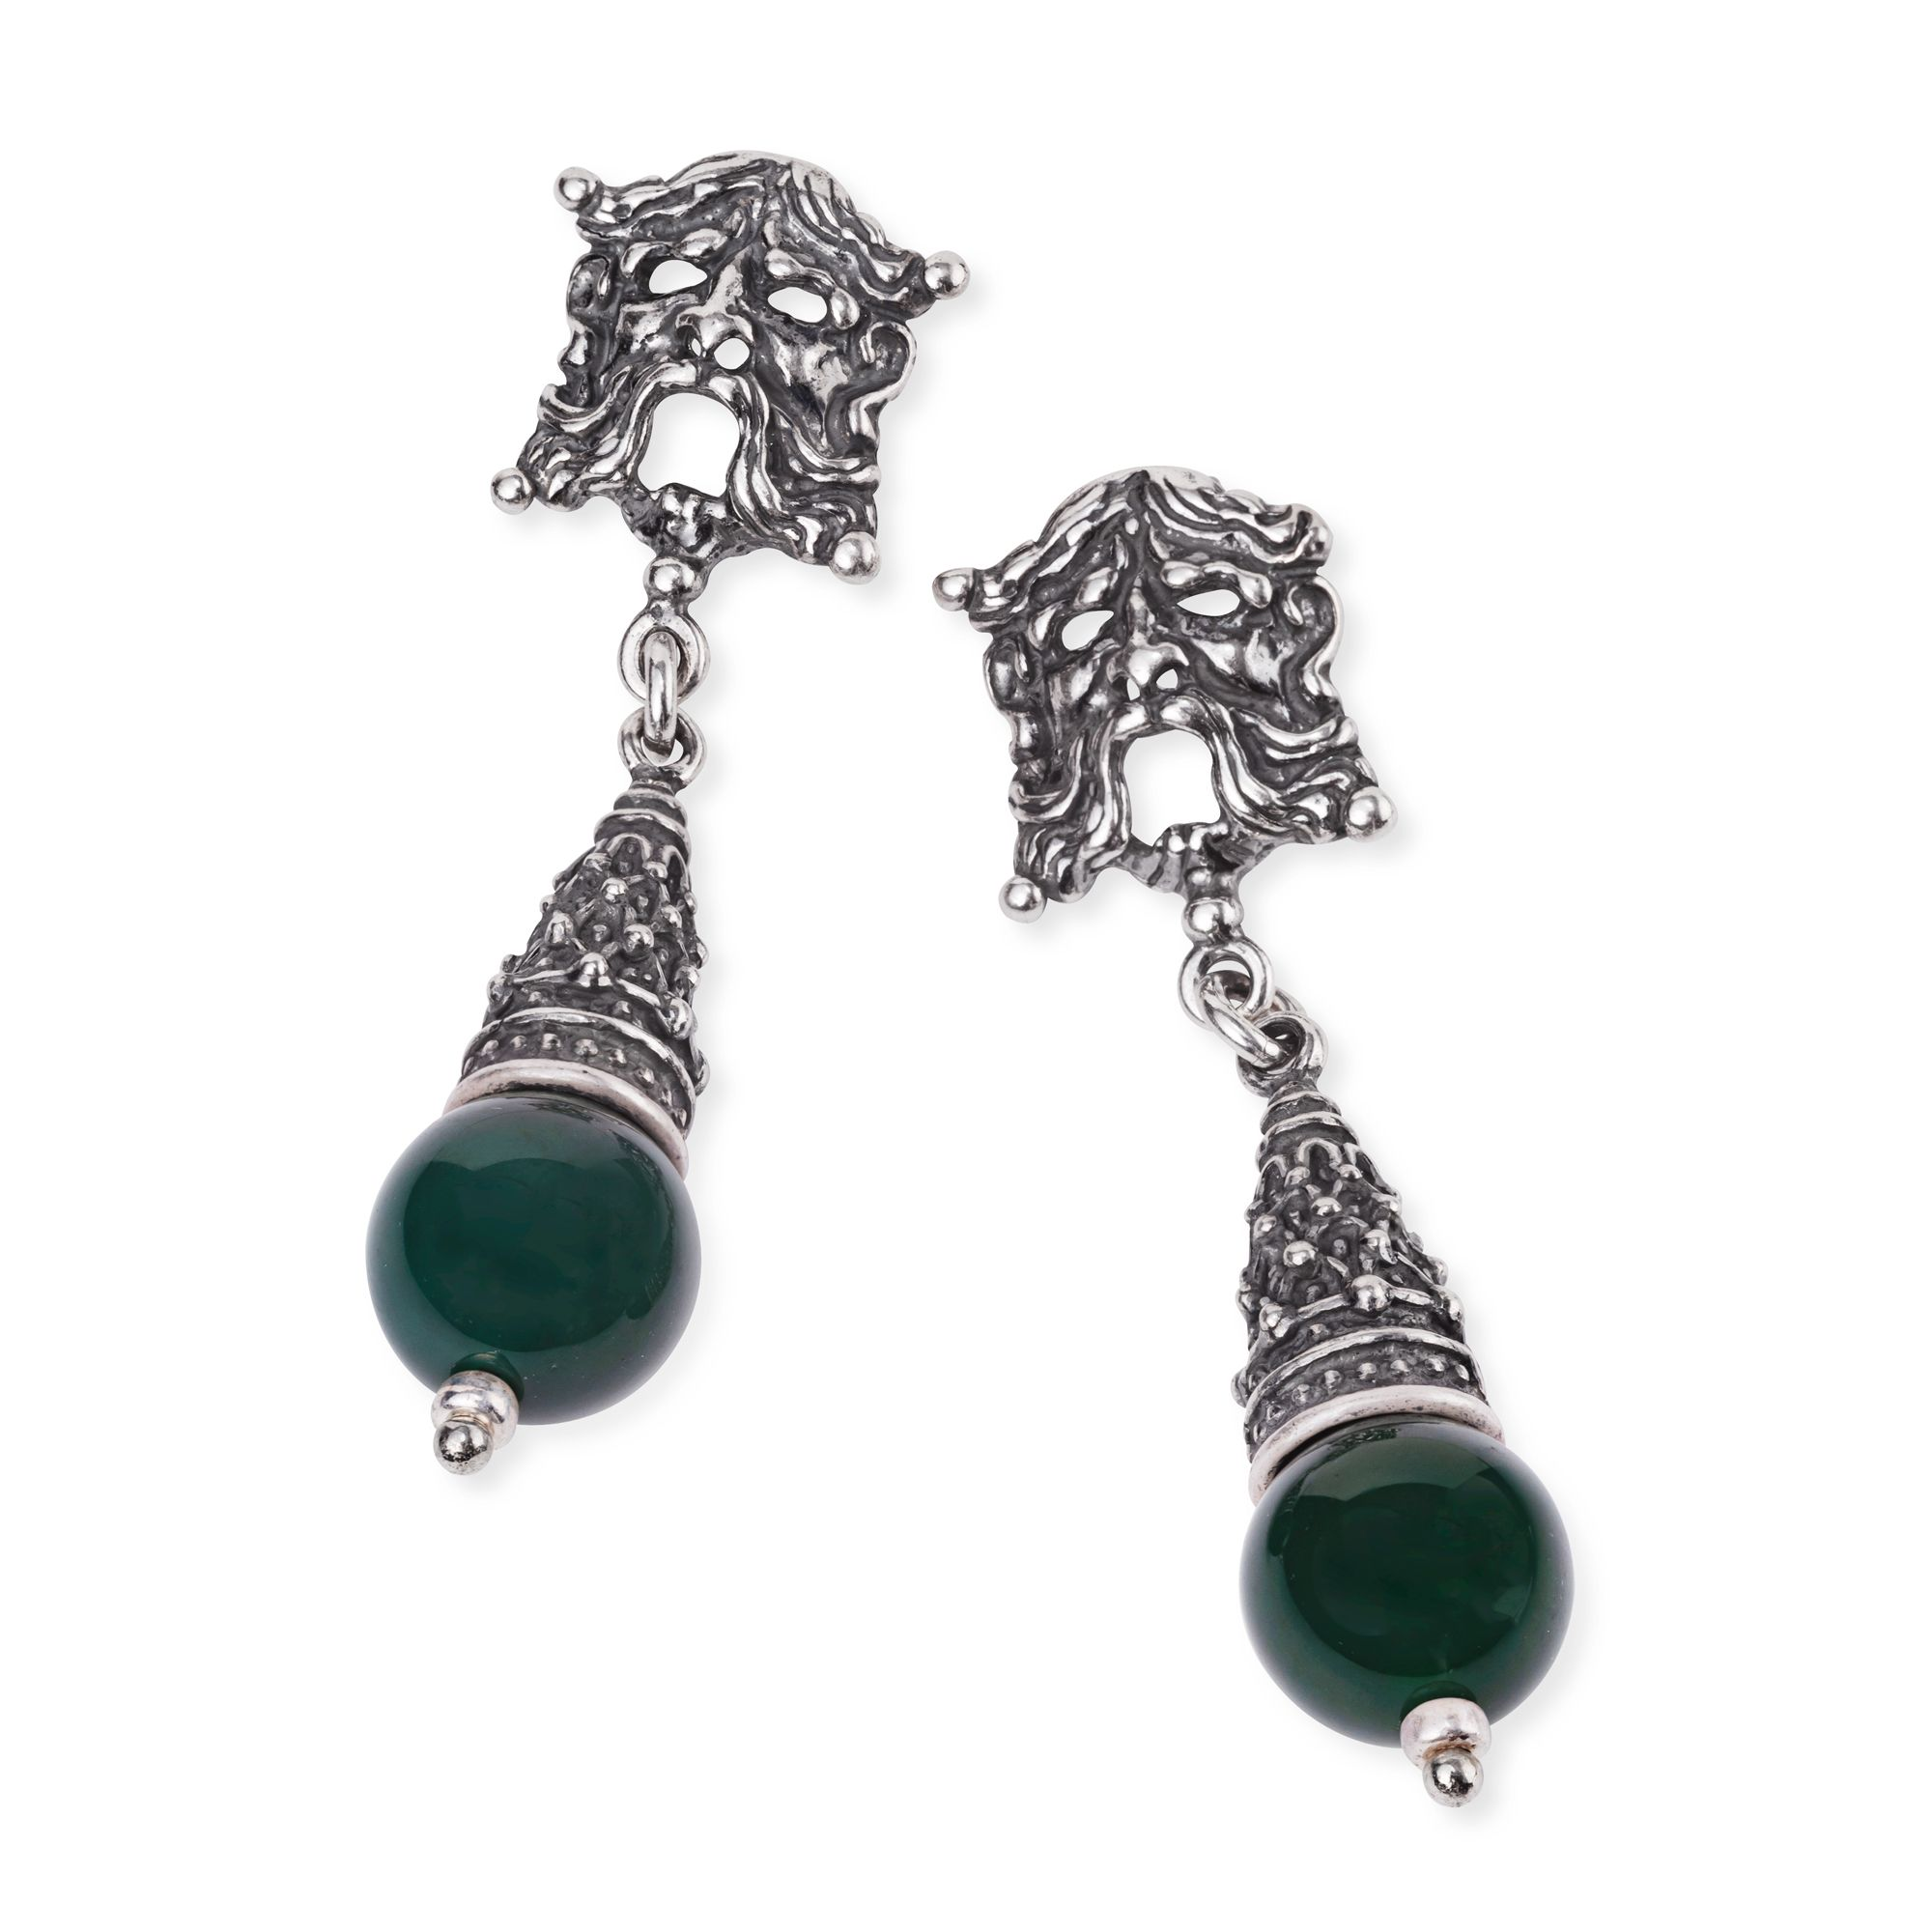 Earrings with Masks (33359)